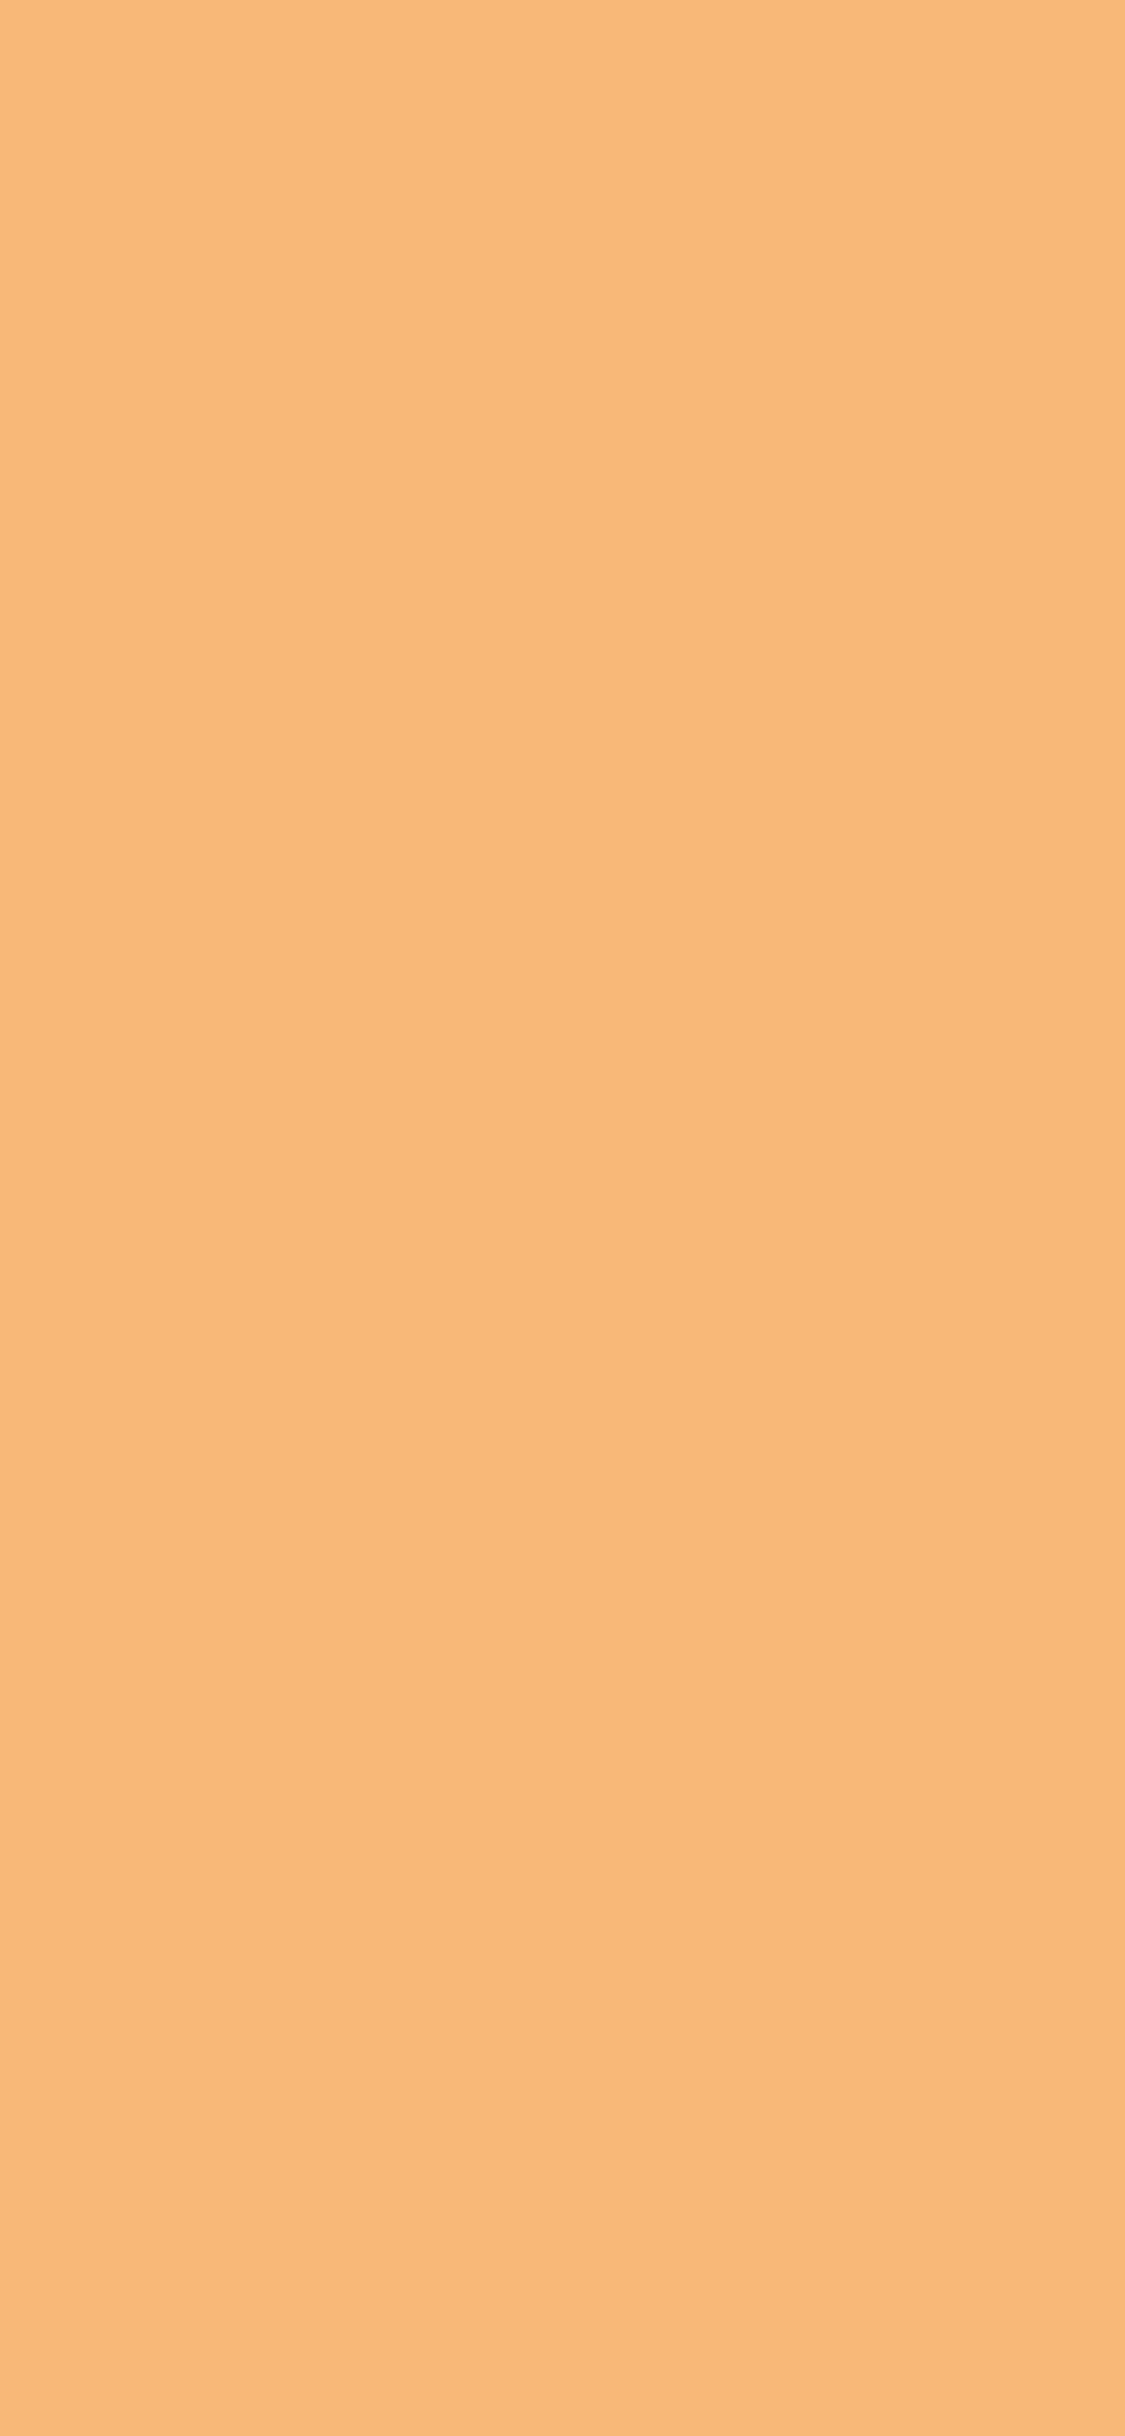 1125x2436 Mellow Apricot Solid Color Background